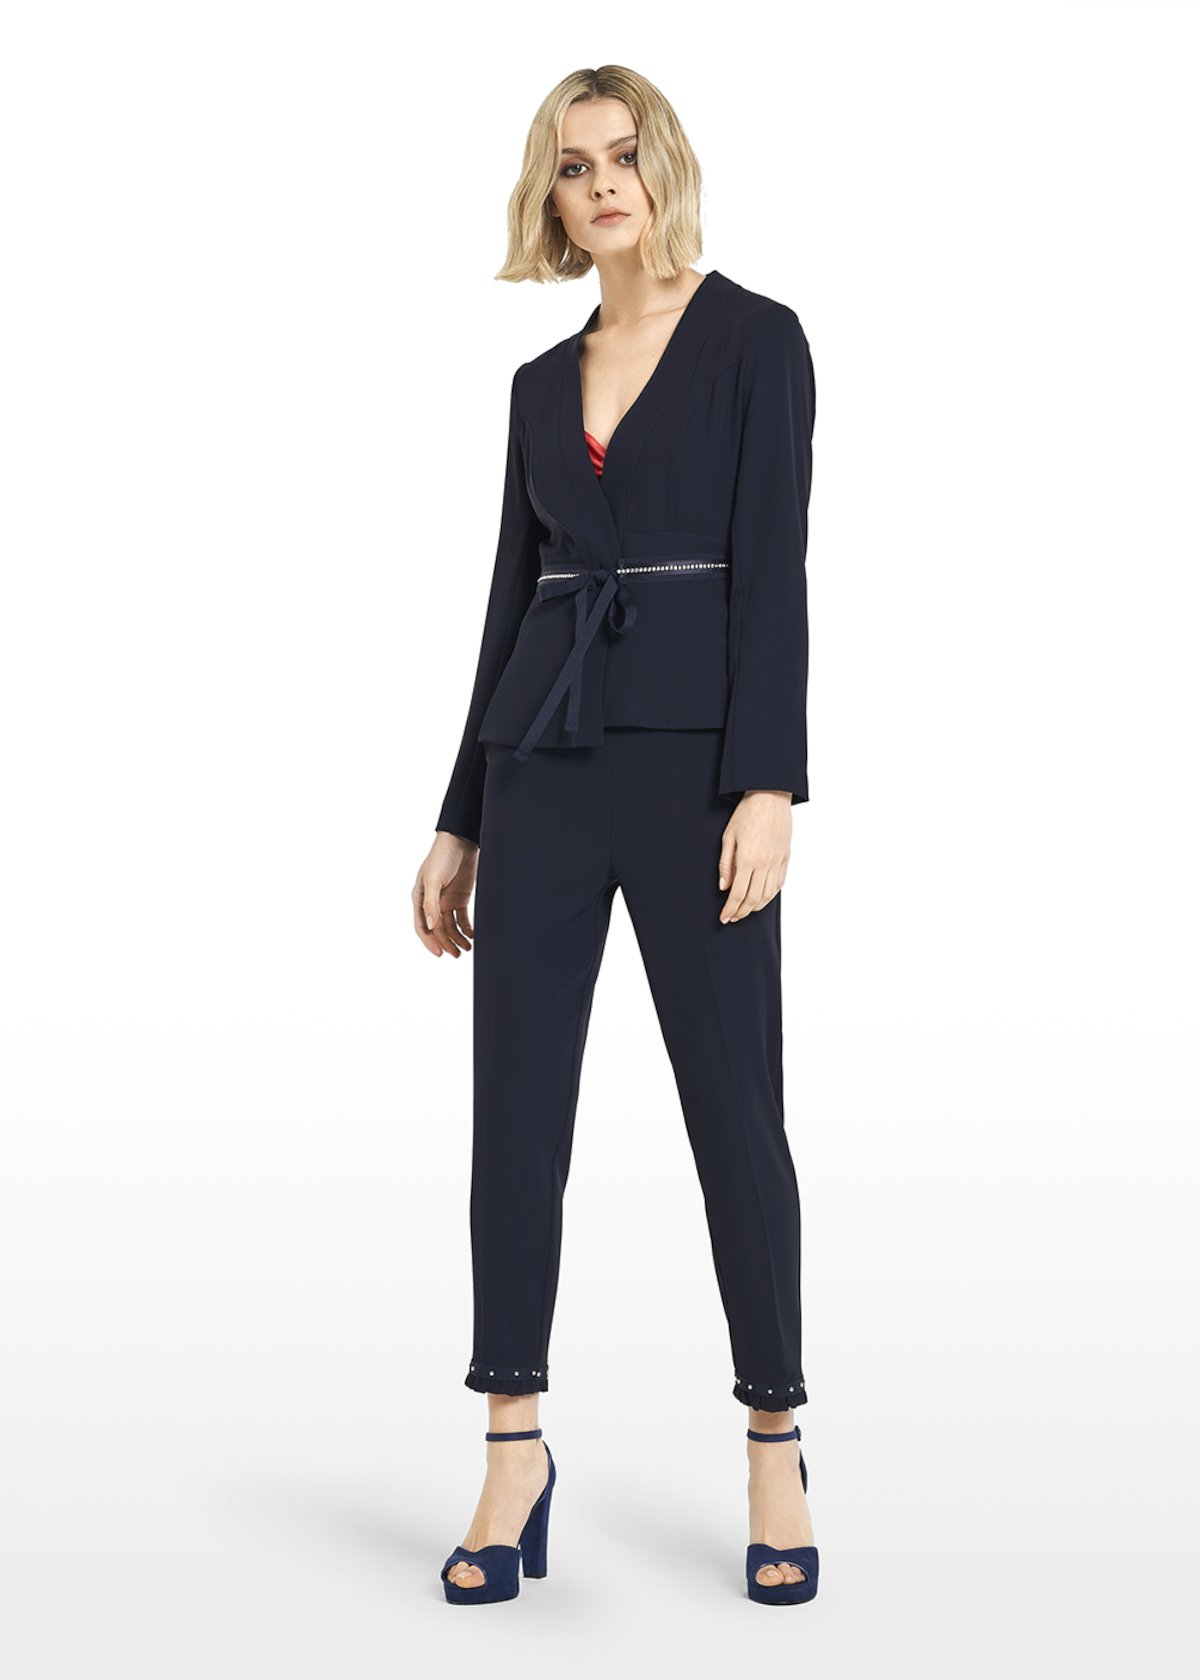 Gilda jacket cadi fabric with removable belt - Medium Blue - Woman - Category image